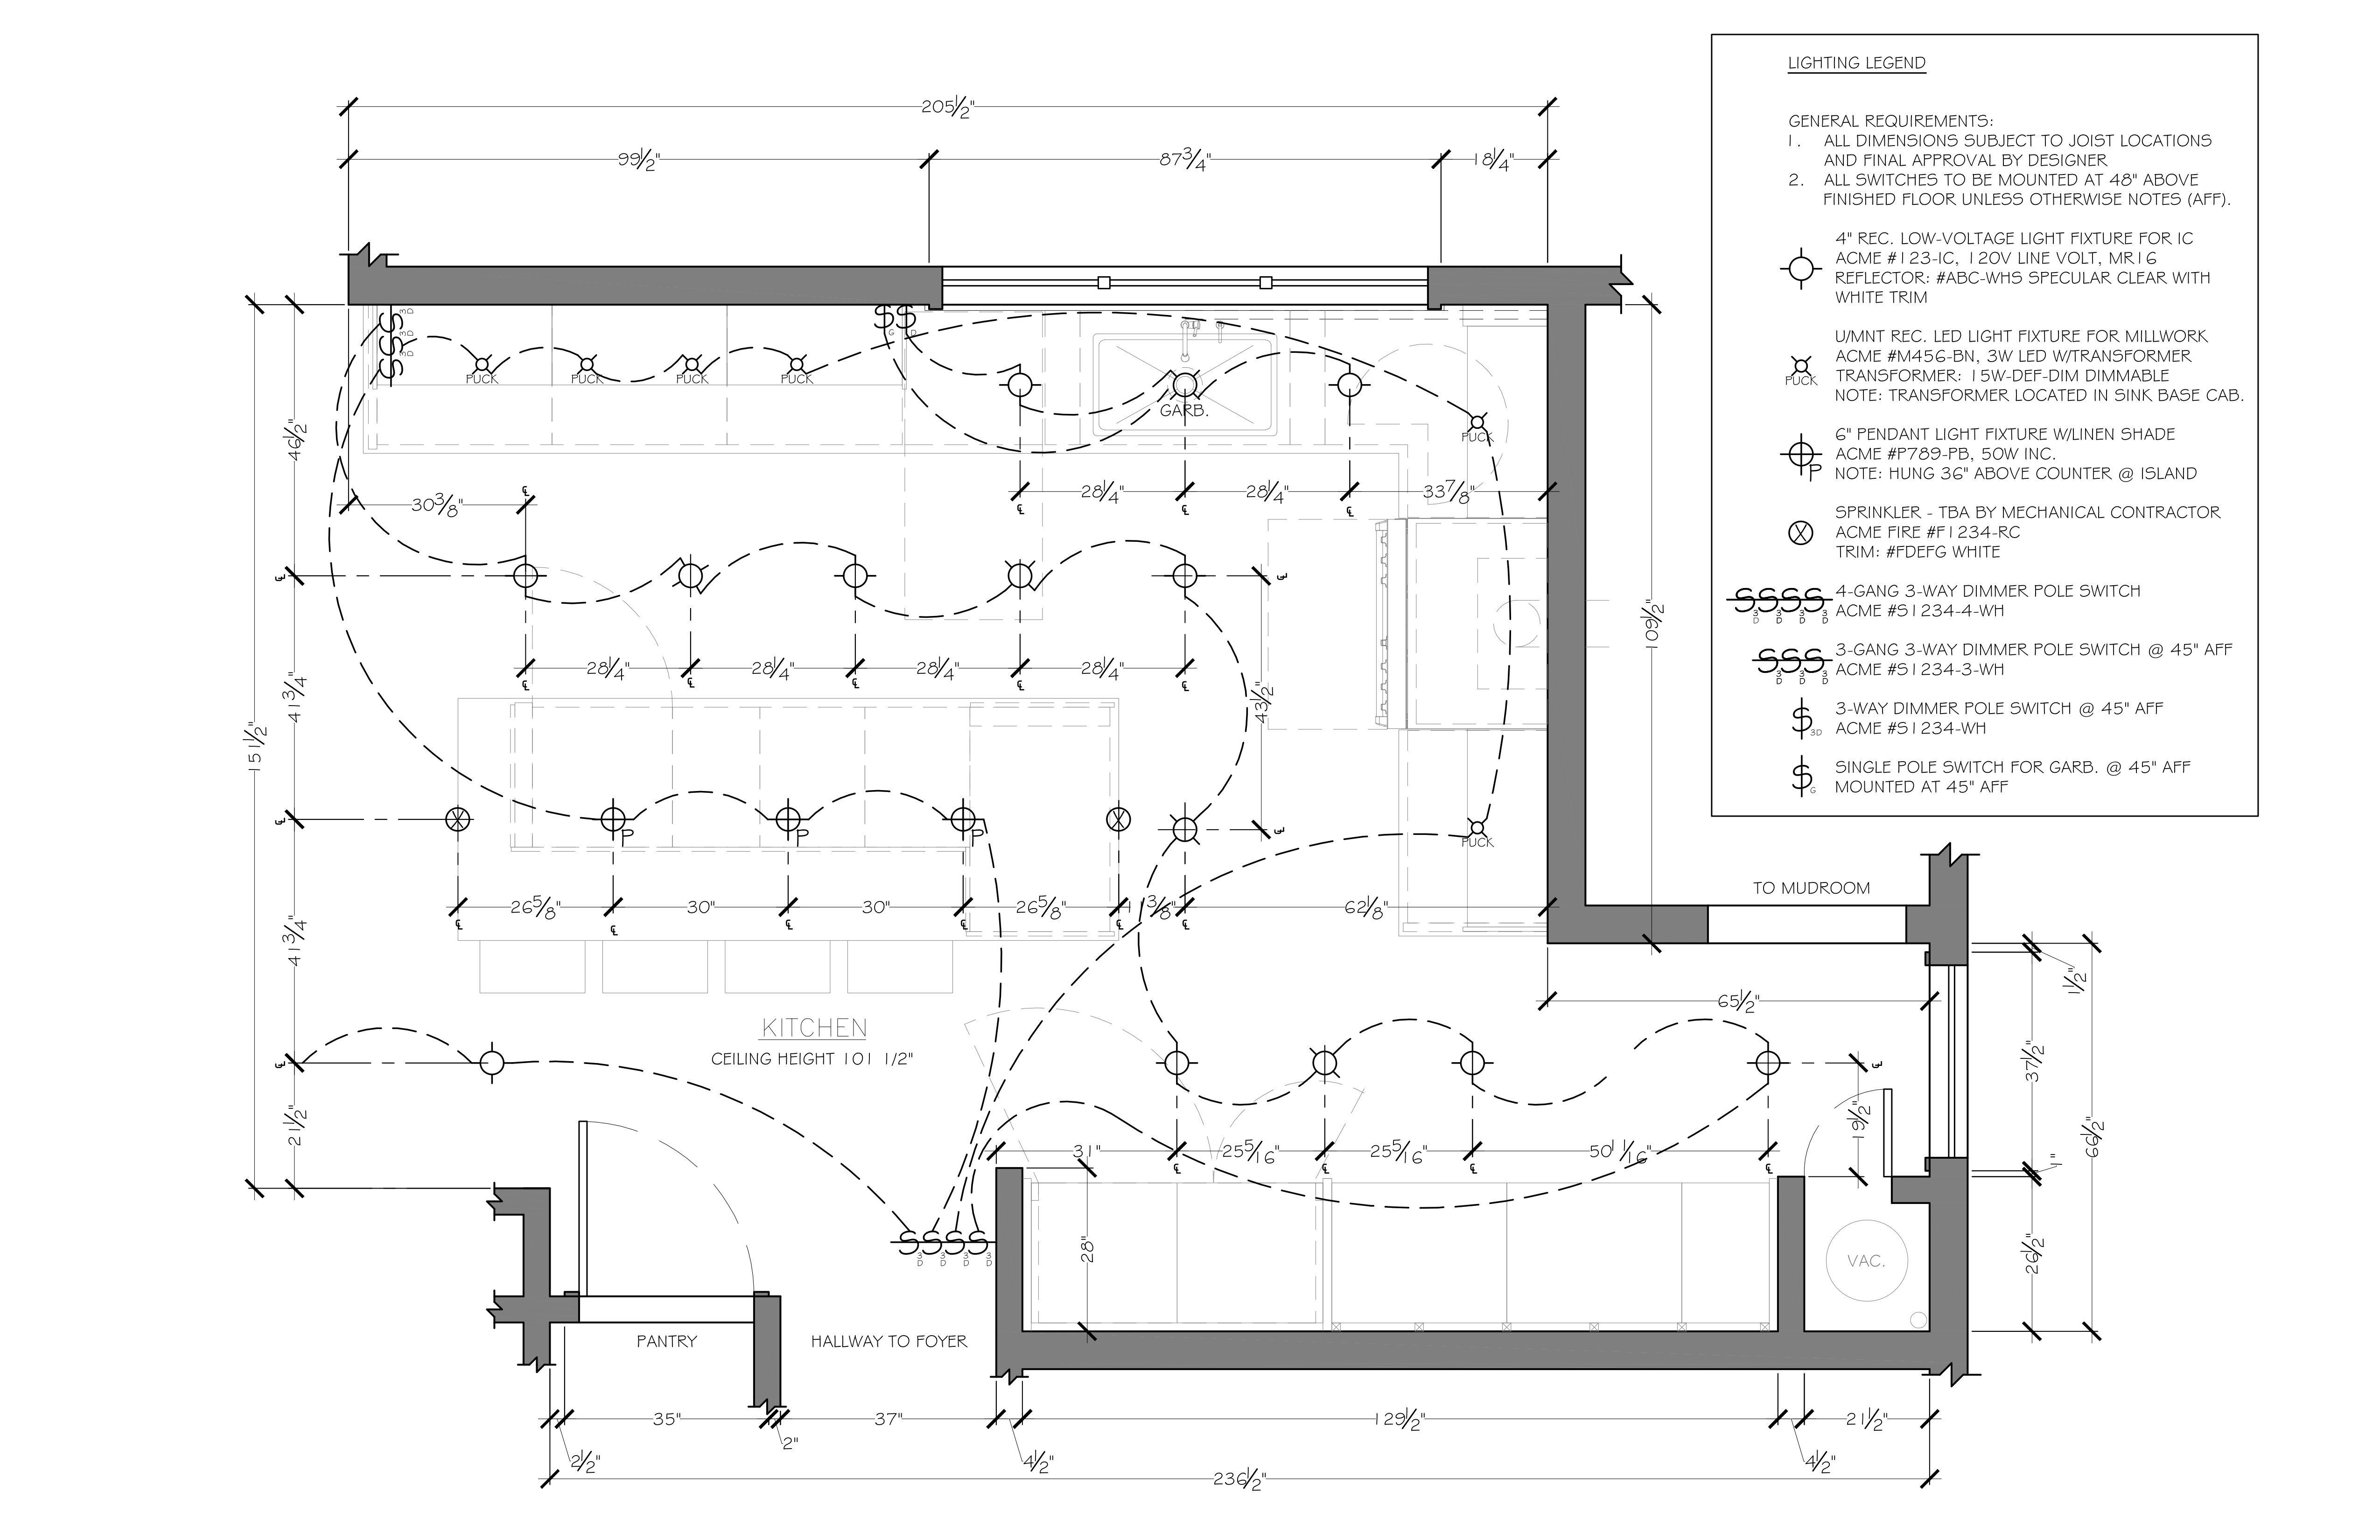 hight resolution of kitchen reflected ceiling plan example c 2013 corey klassen ckd used under permission from the national kitchen bath association